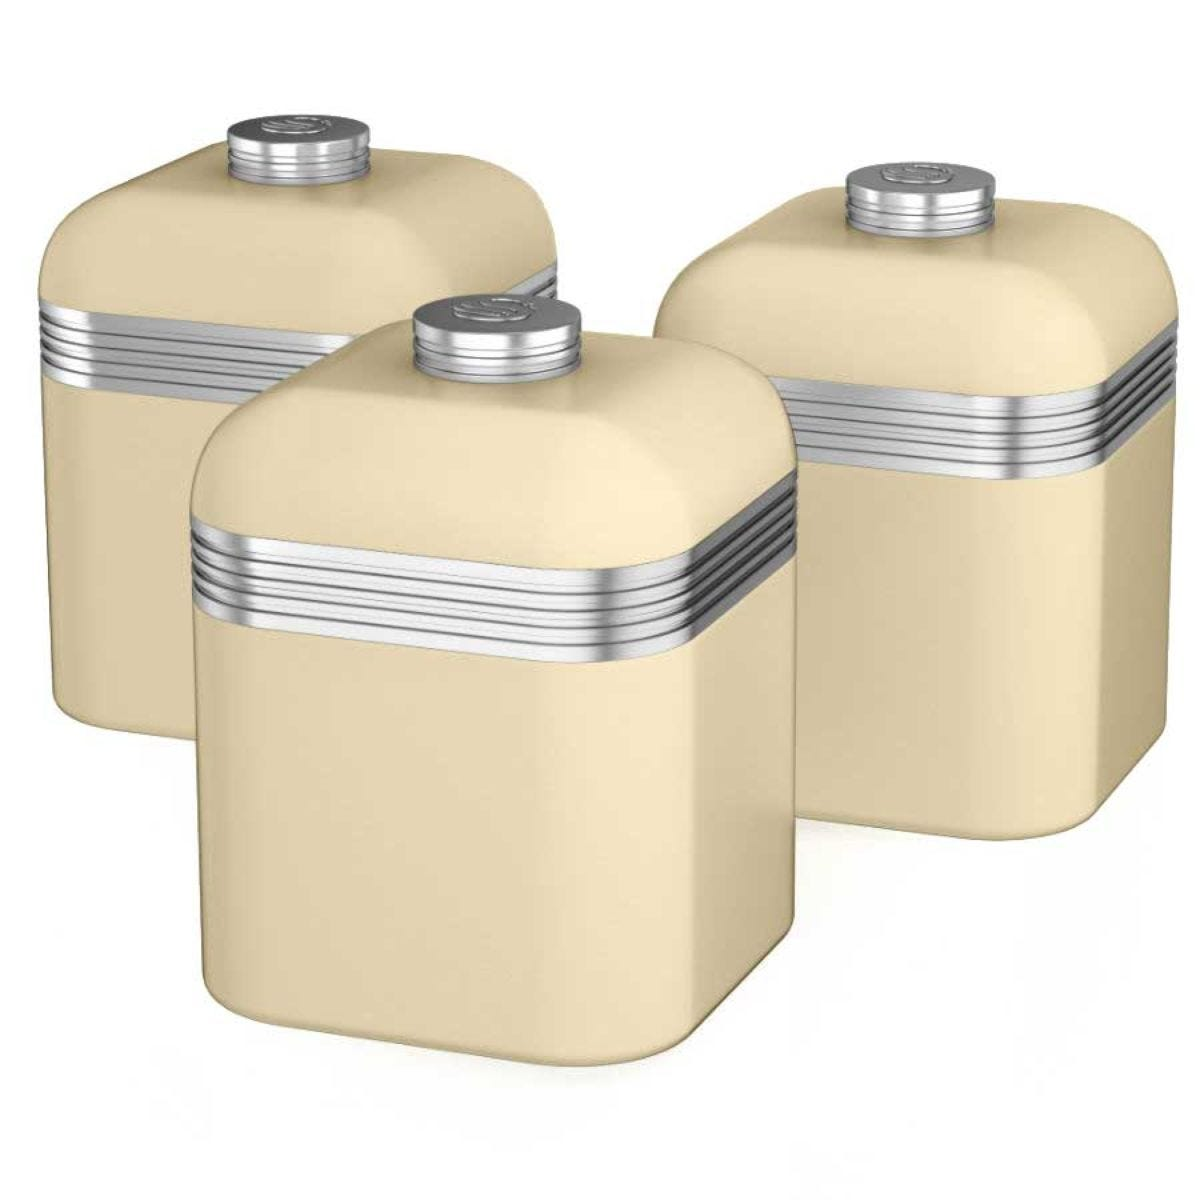 Swan Retro Set Of 3 Canisters - Cream